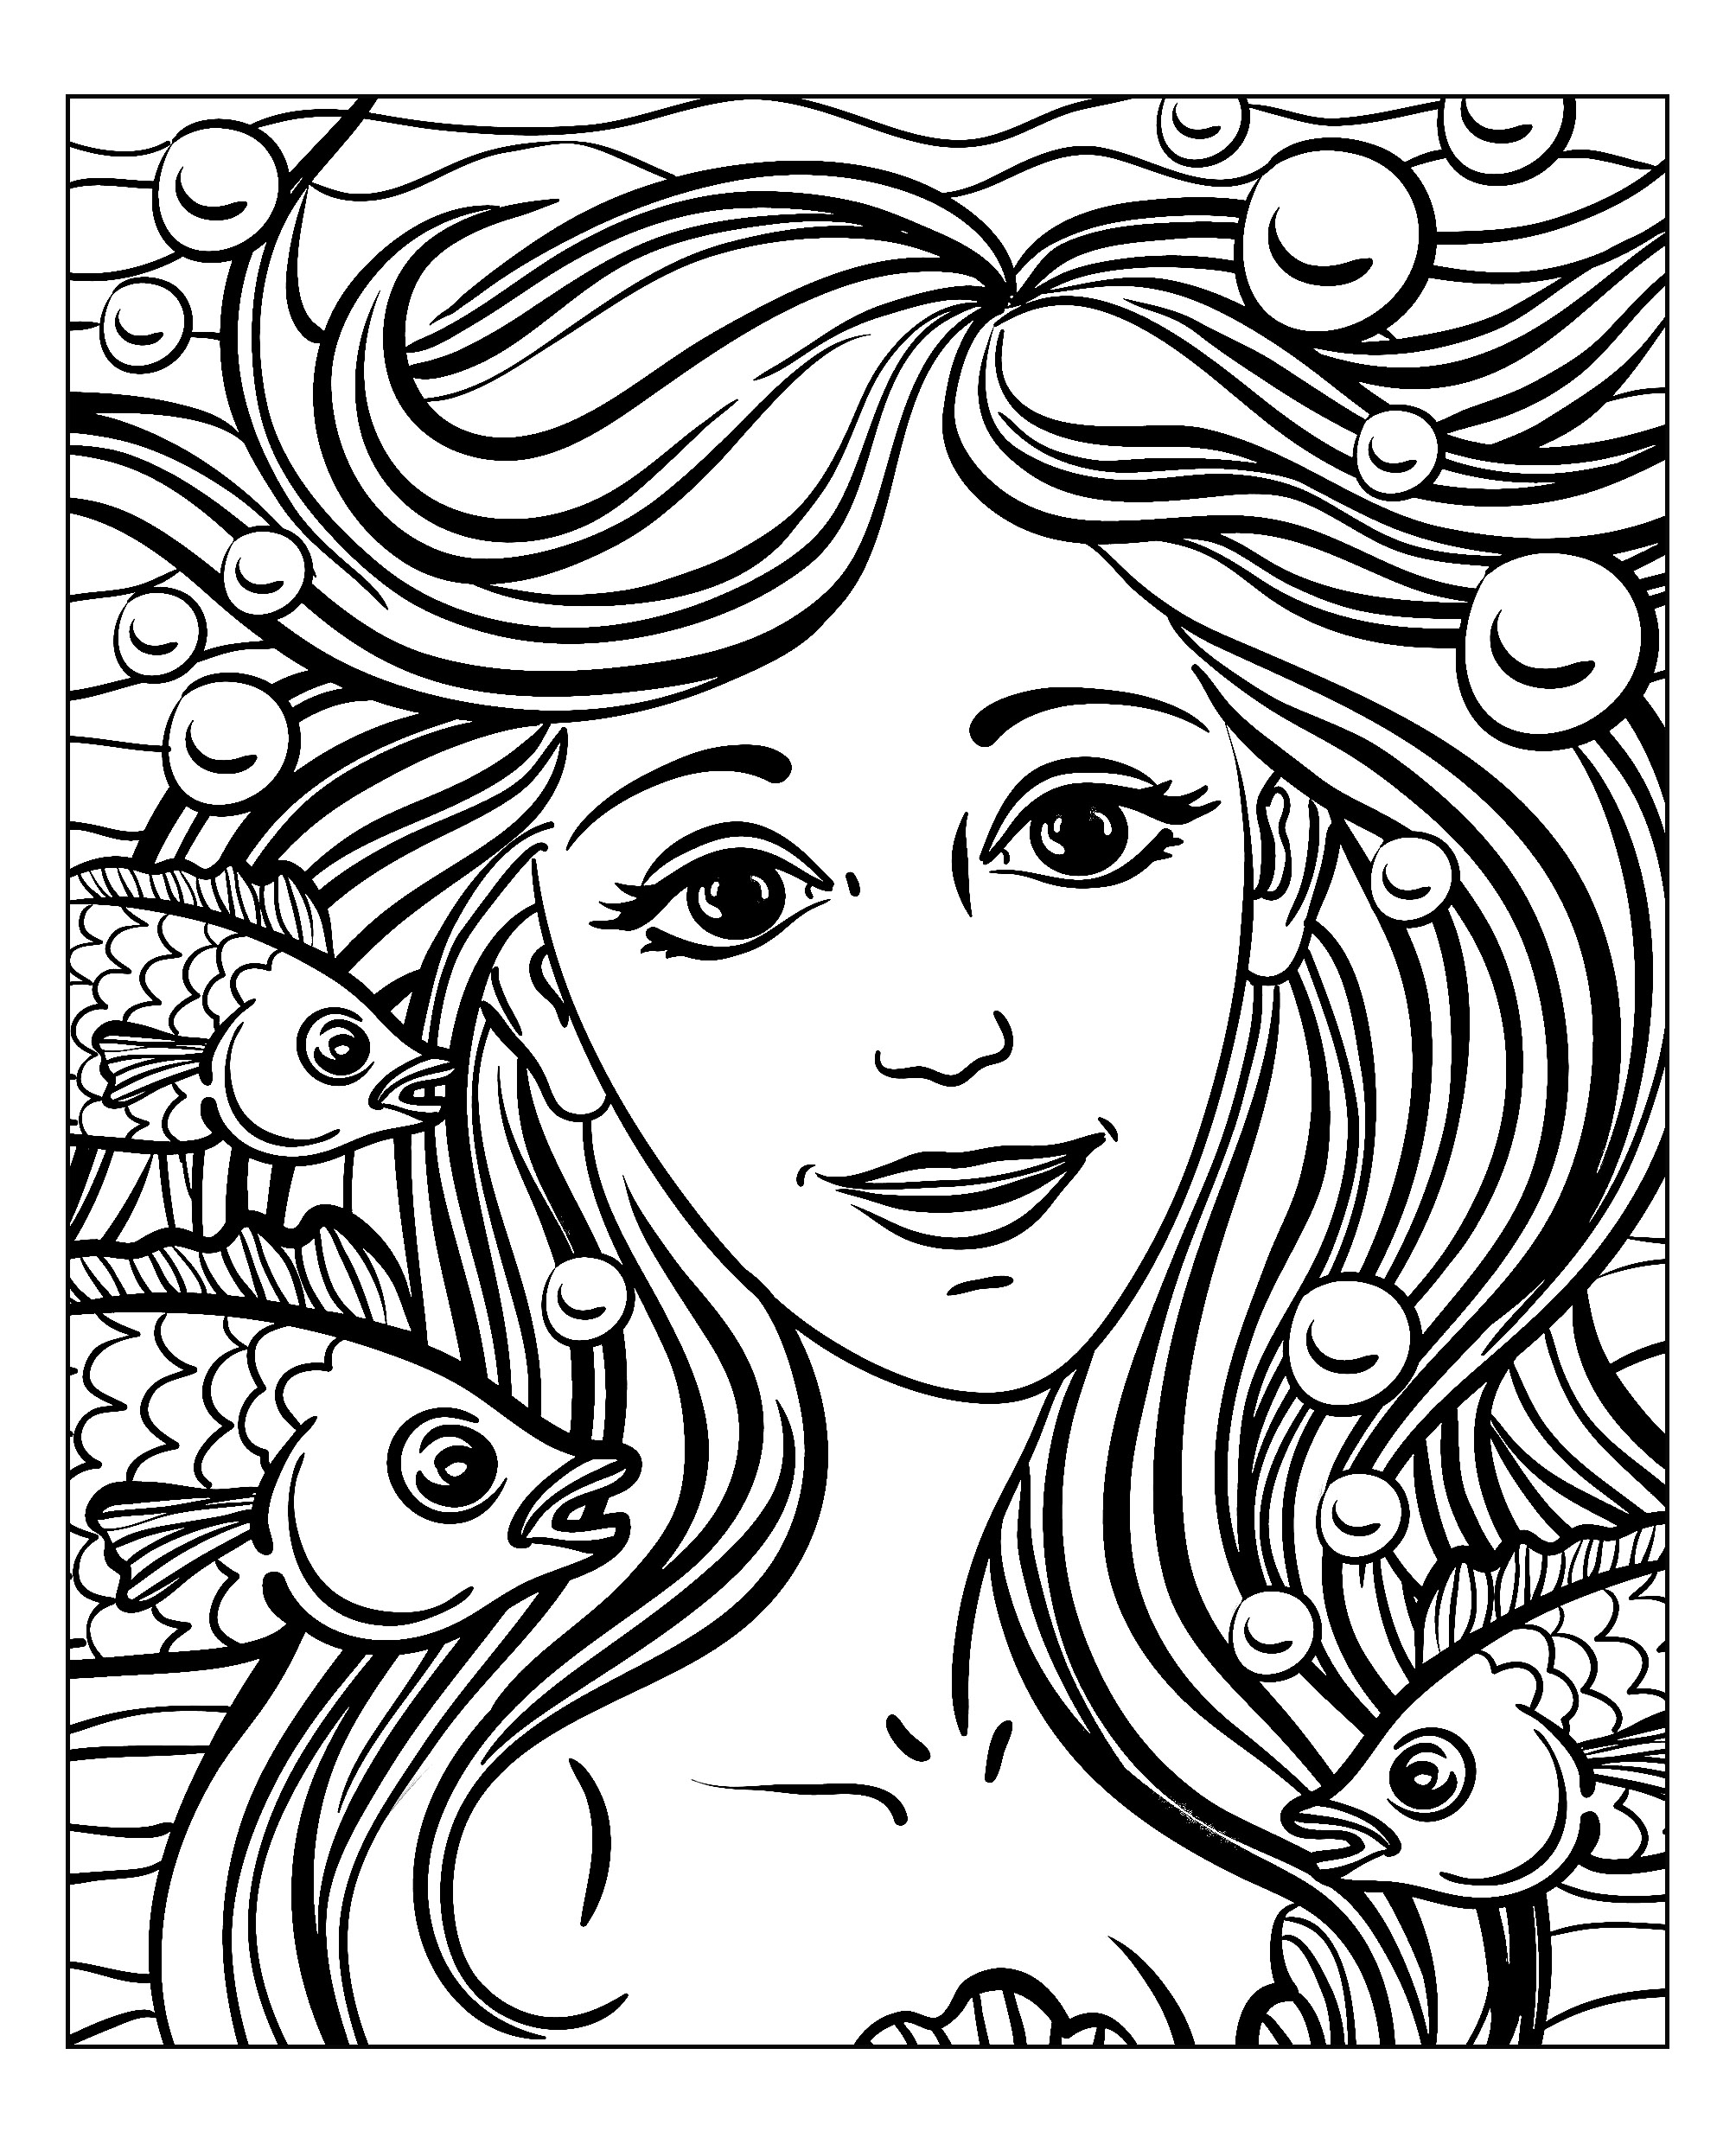 Mermaid Beautiful Face Exclusive Coloring Page For Adult By Natuskadpi